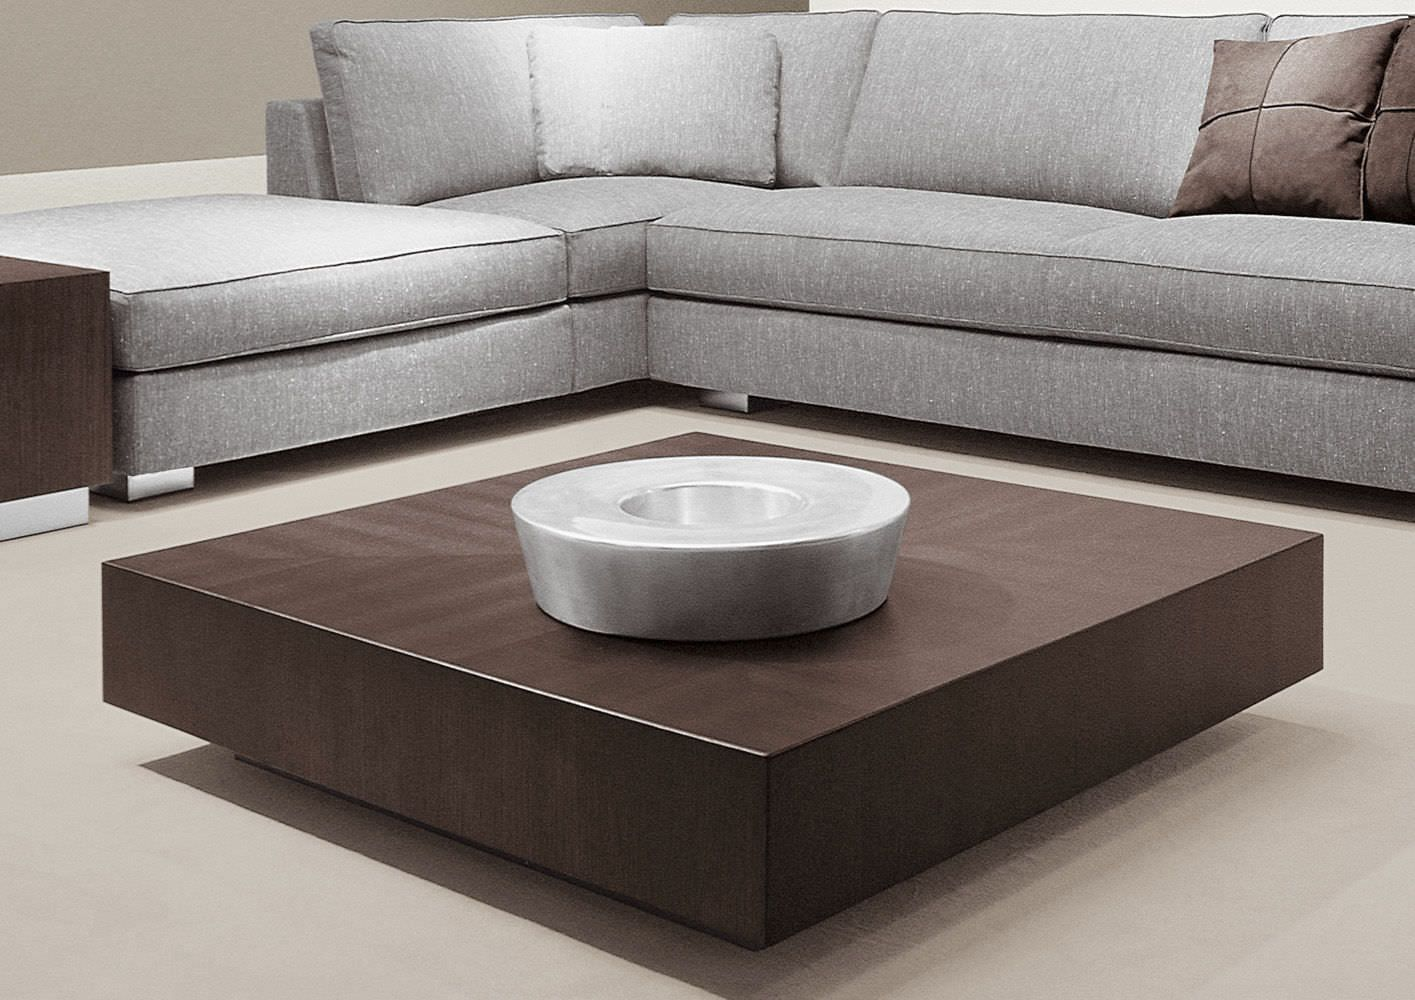 12 Contemporary Coffee Tables For Modern Living Room Top Inspirations Sofa Table Design Coffee Table Square Coffee Table Furniture